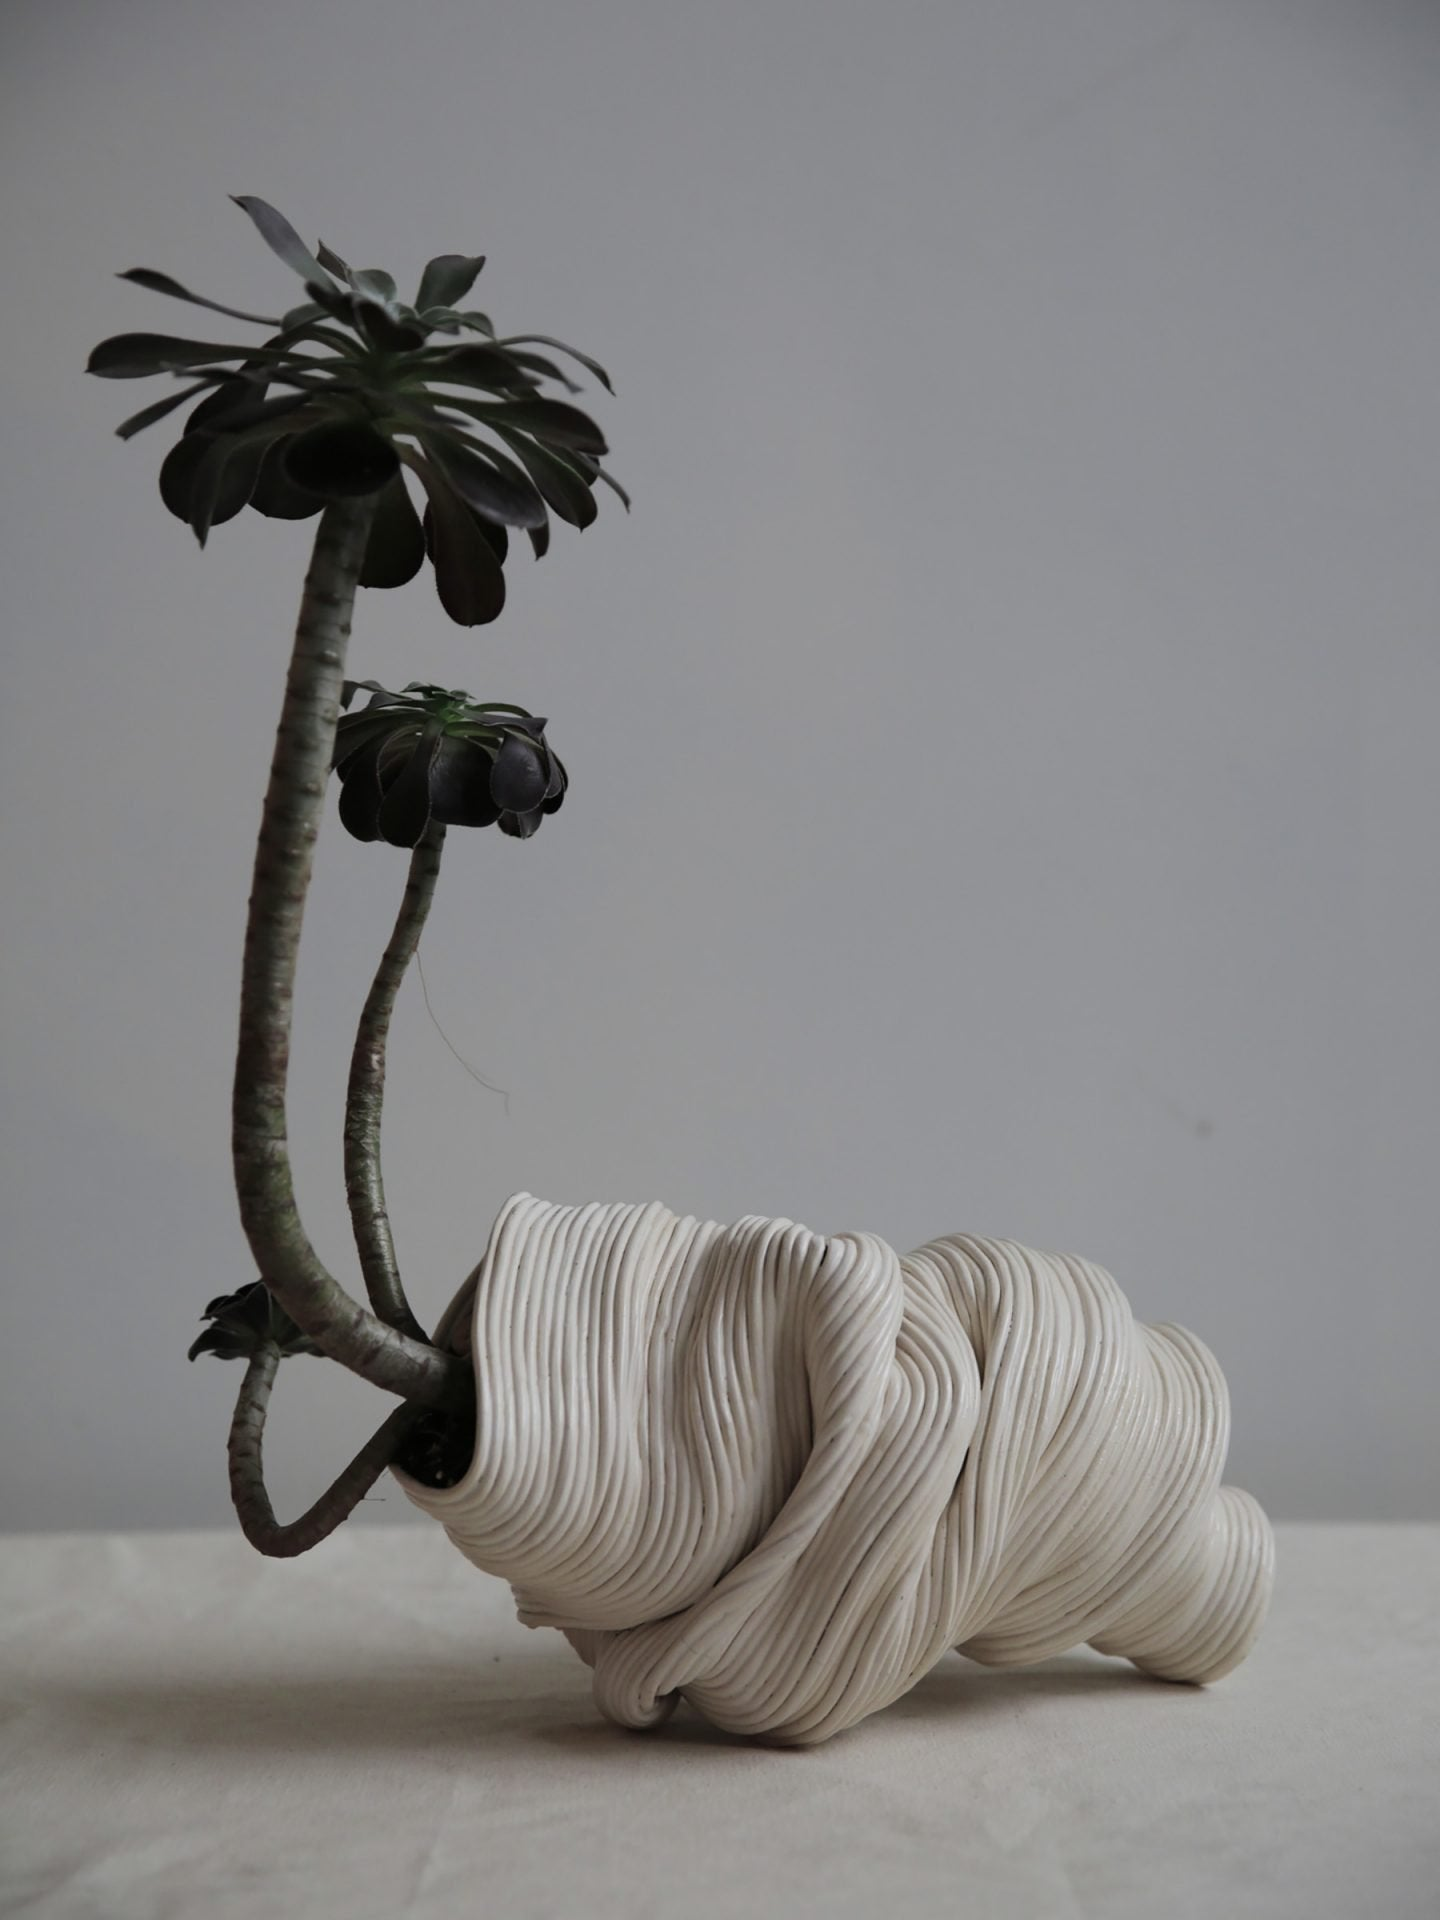 A small tree coming out from a white vase